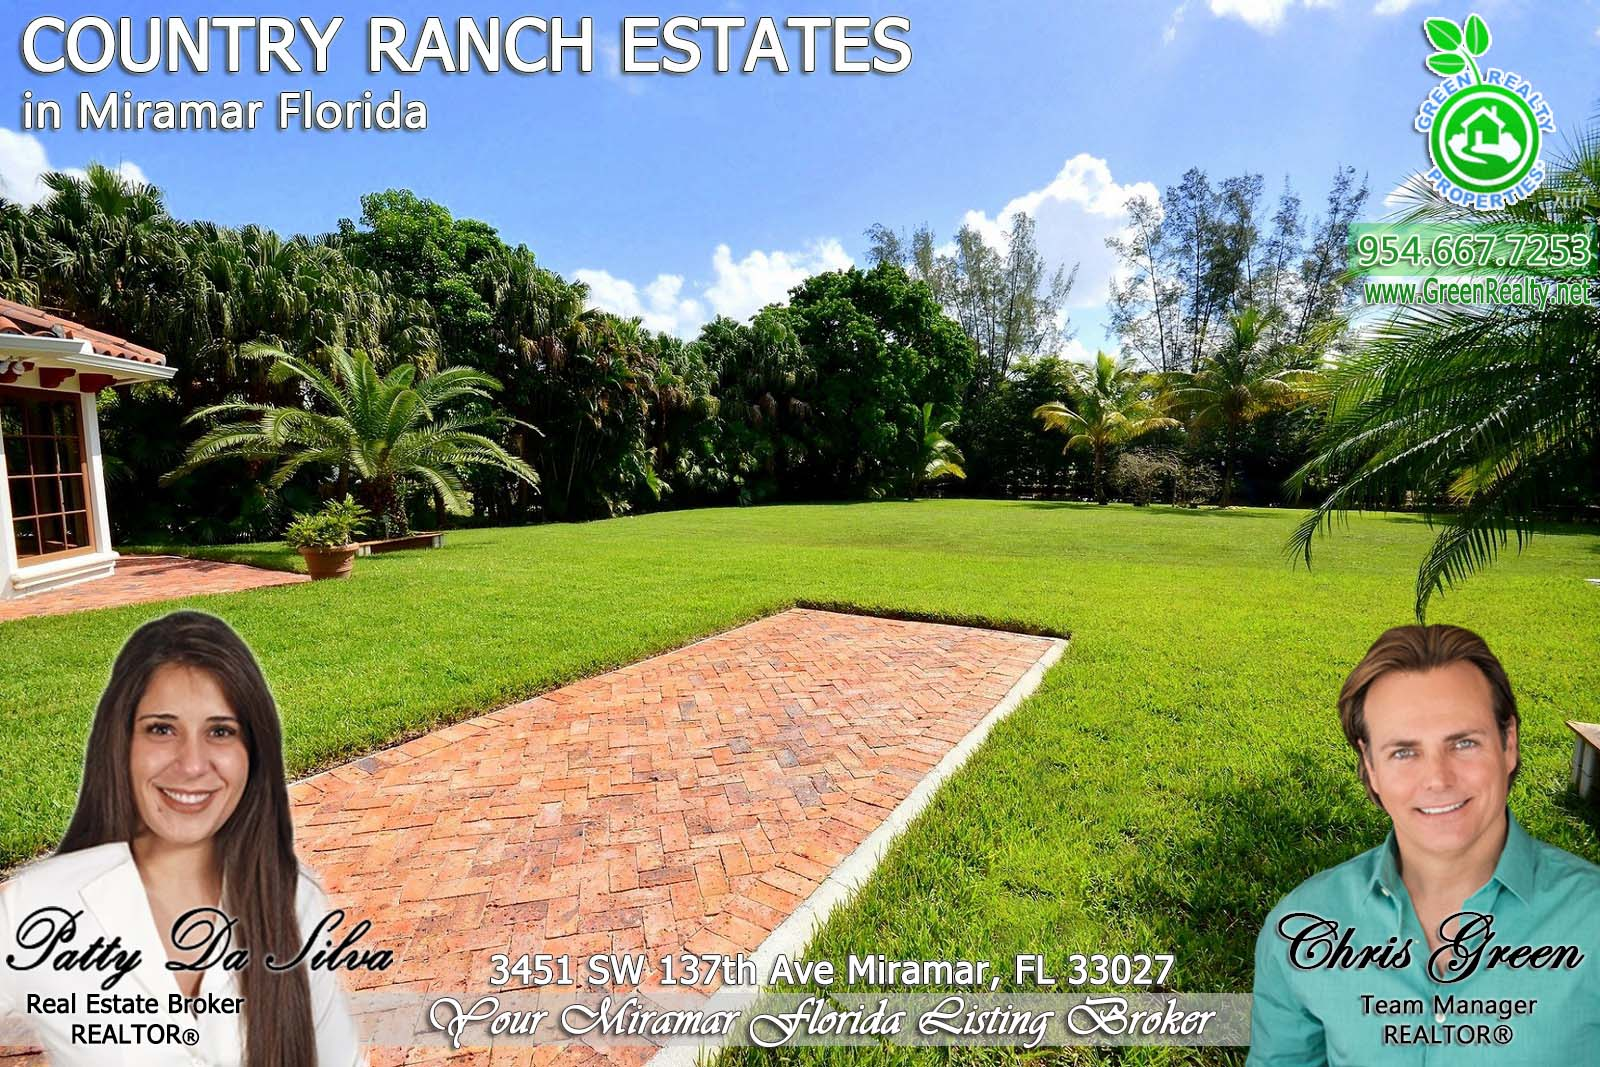 57 County Ranch Estates Broward County Luxury Homes